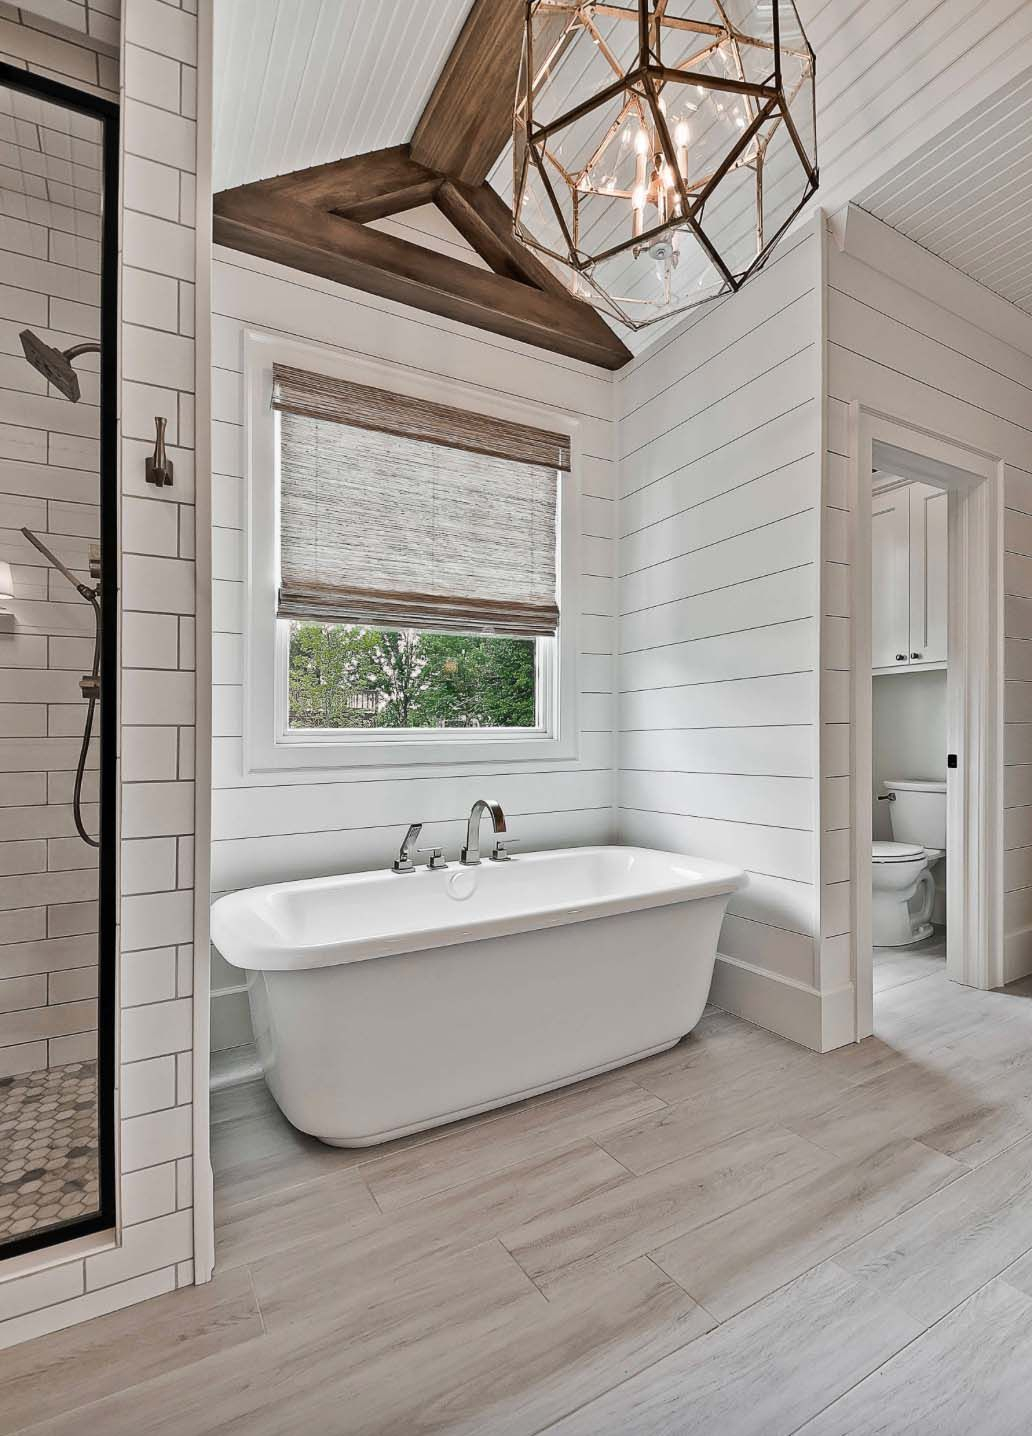 Fascinating Farmhouse Master Bathroom Remodel Ideas To Have Now12